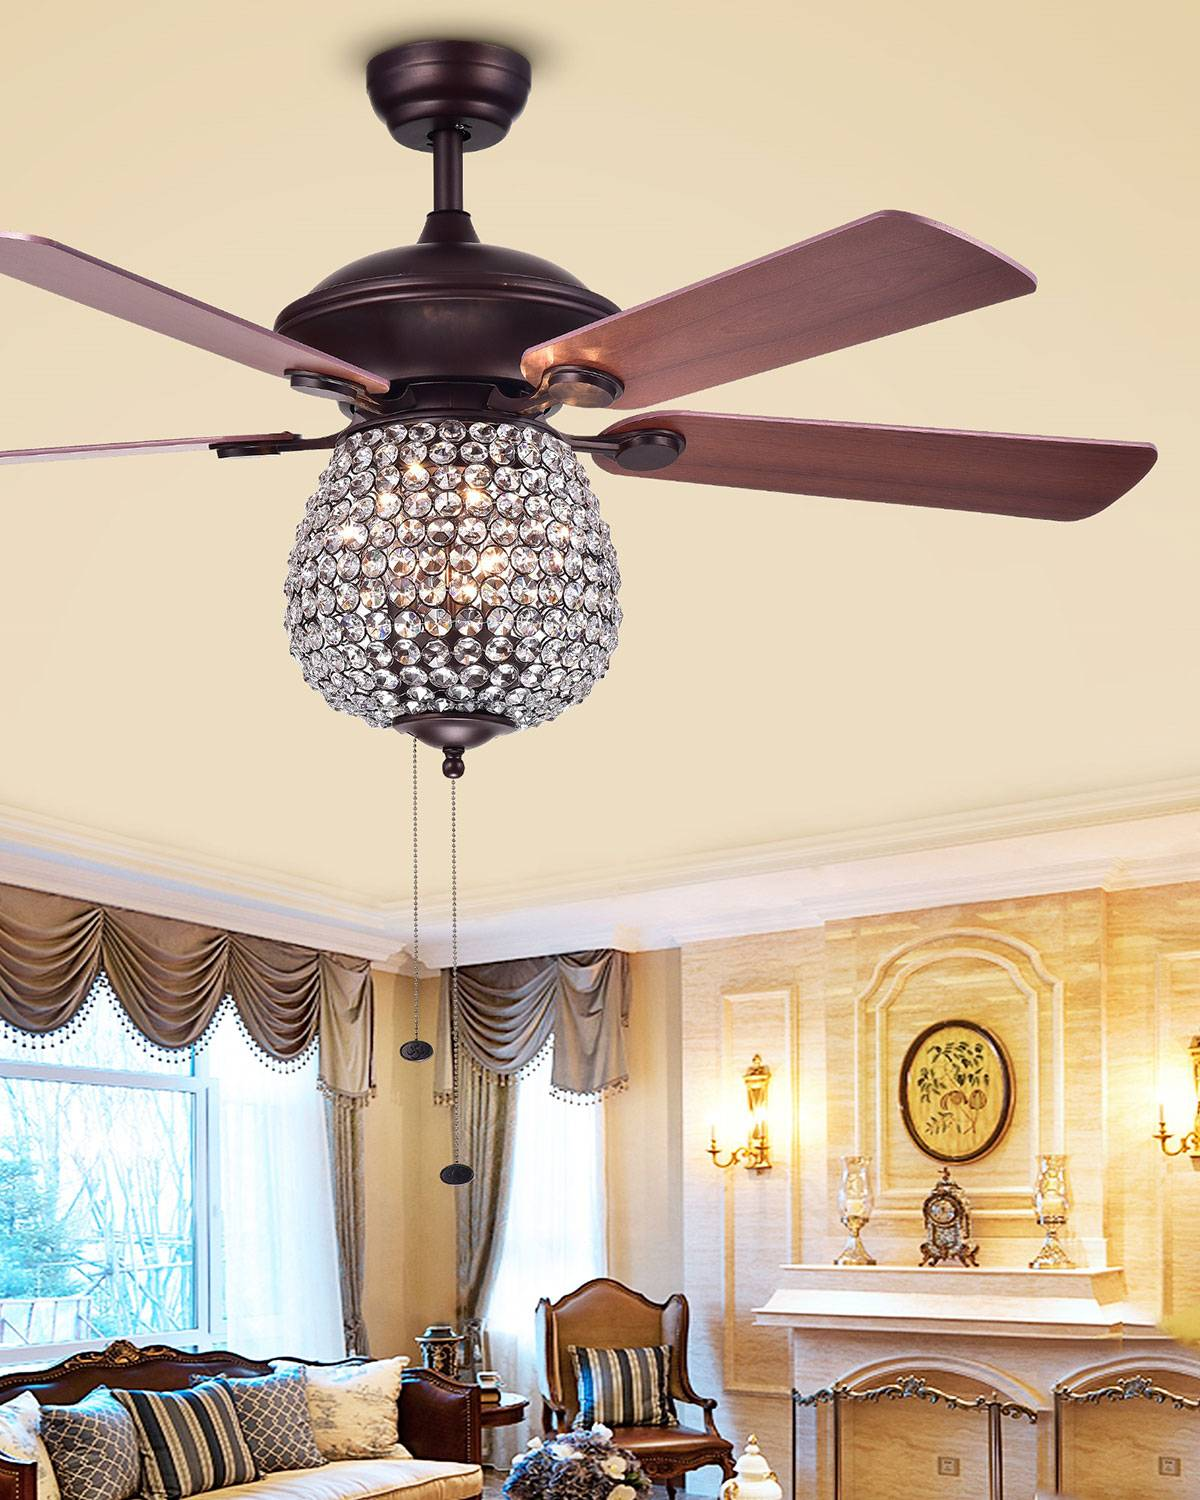 Home Accessories Embedded Crystal Chandelier Ceiling Fan